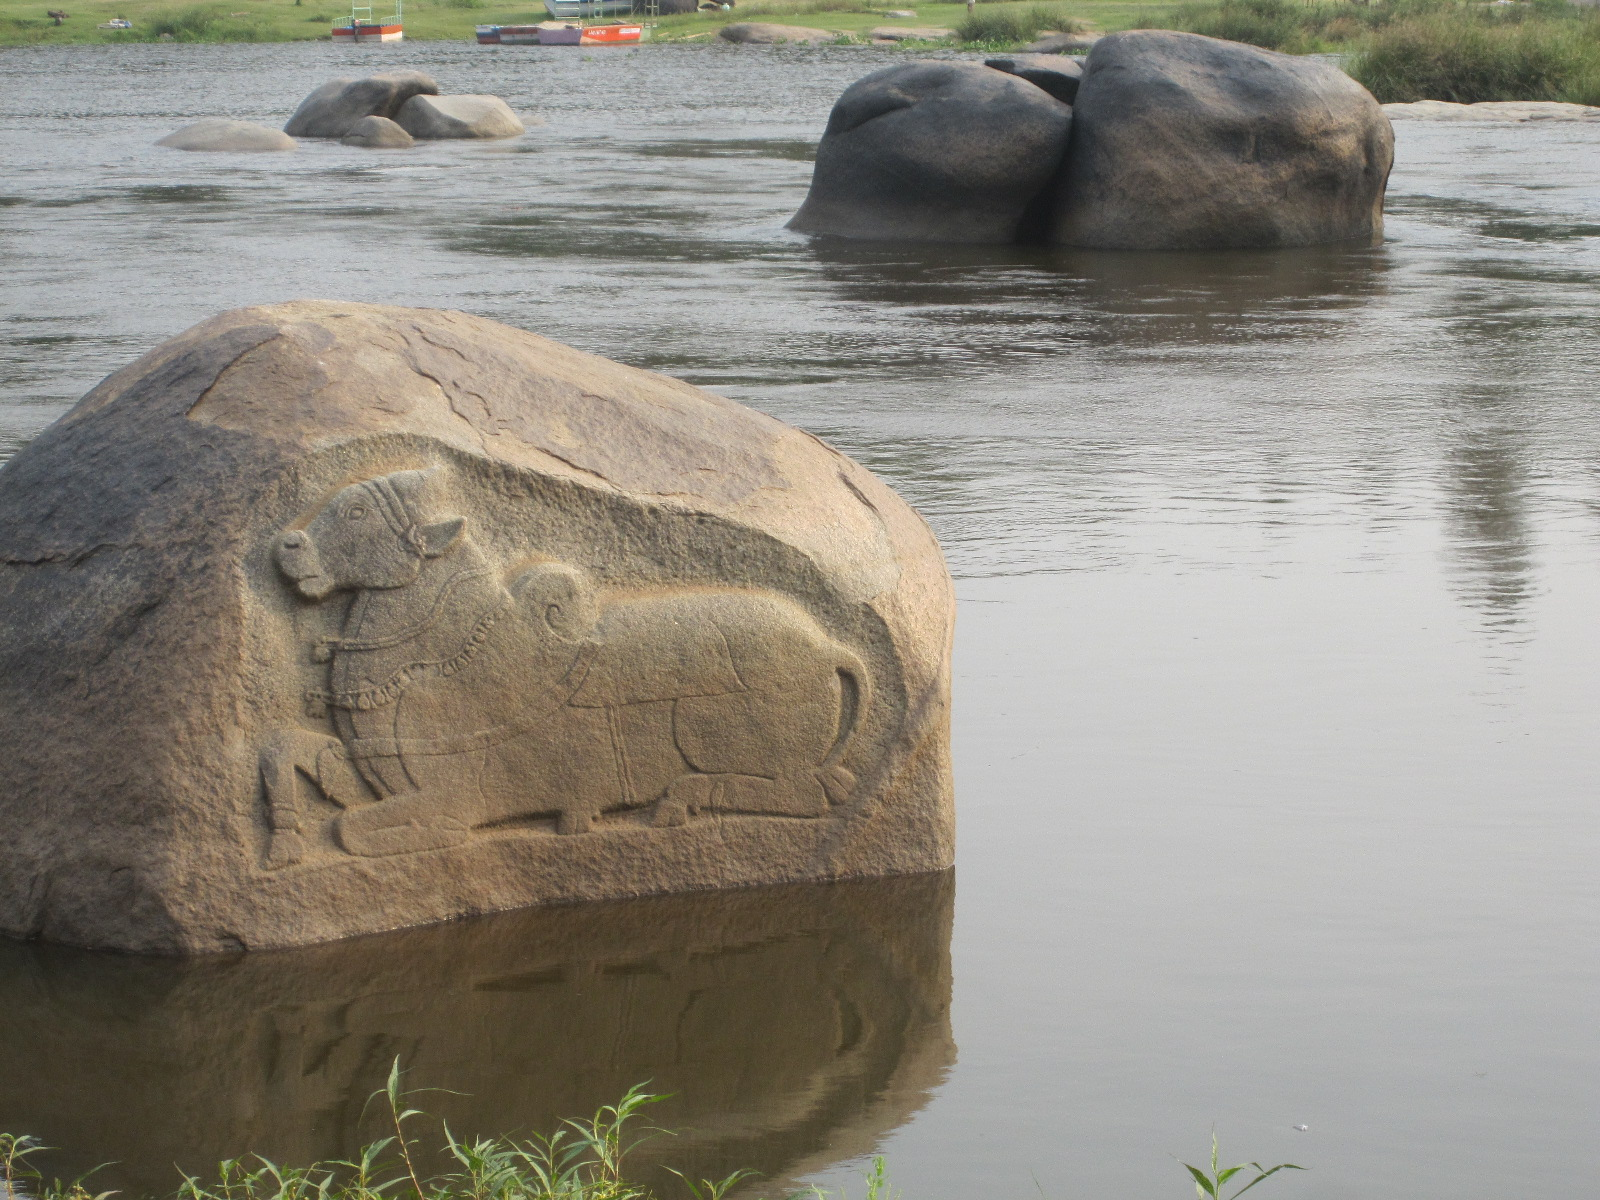 I'm not sure if Shiva is, but in Hampi. Nandi definitely is!